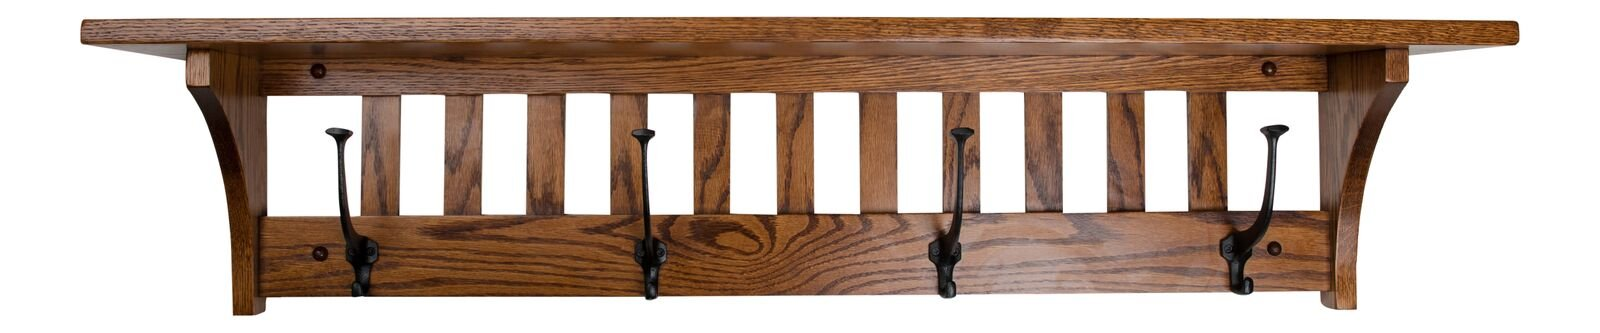 """Wall Mounted Mission Coat Hat Rain Sports Rack with shelf Mission Quartersawn Oak Wood 42"""" with 4 wrought iron hooks L x by Rooms Organized (Michaels Cherry) by Rooms Organized"""